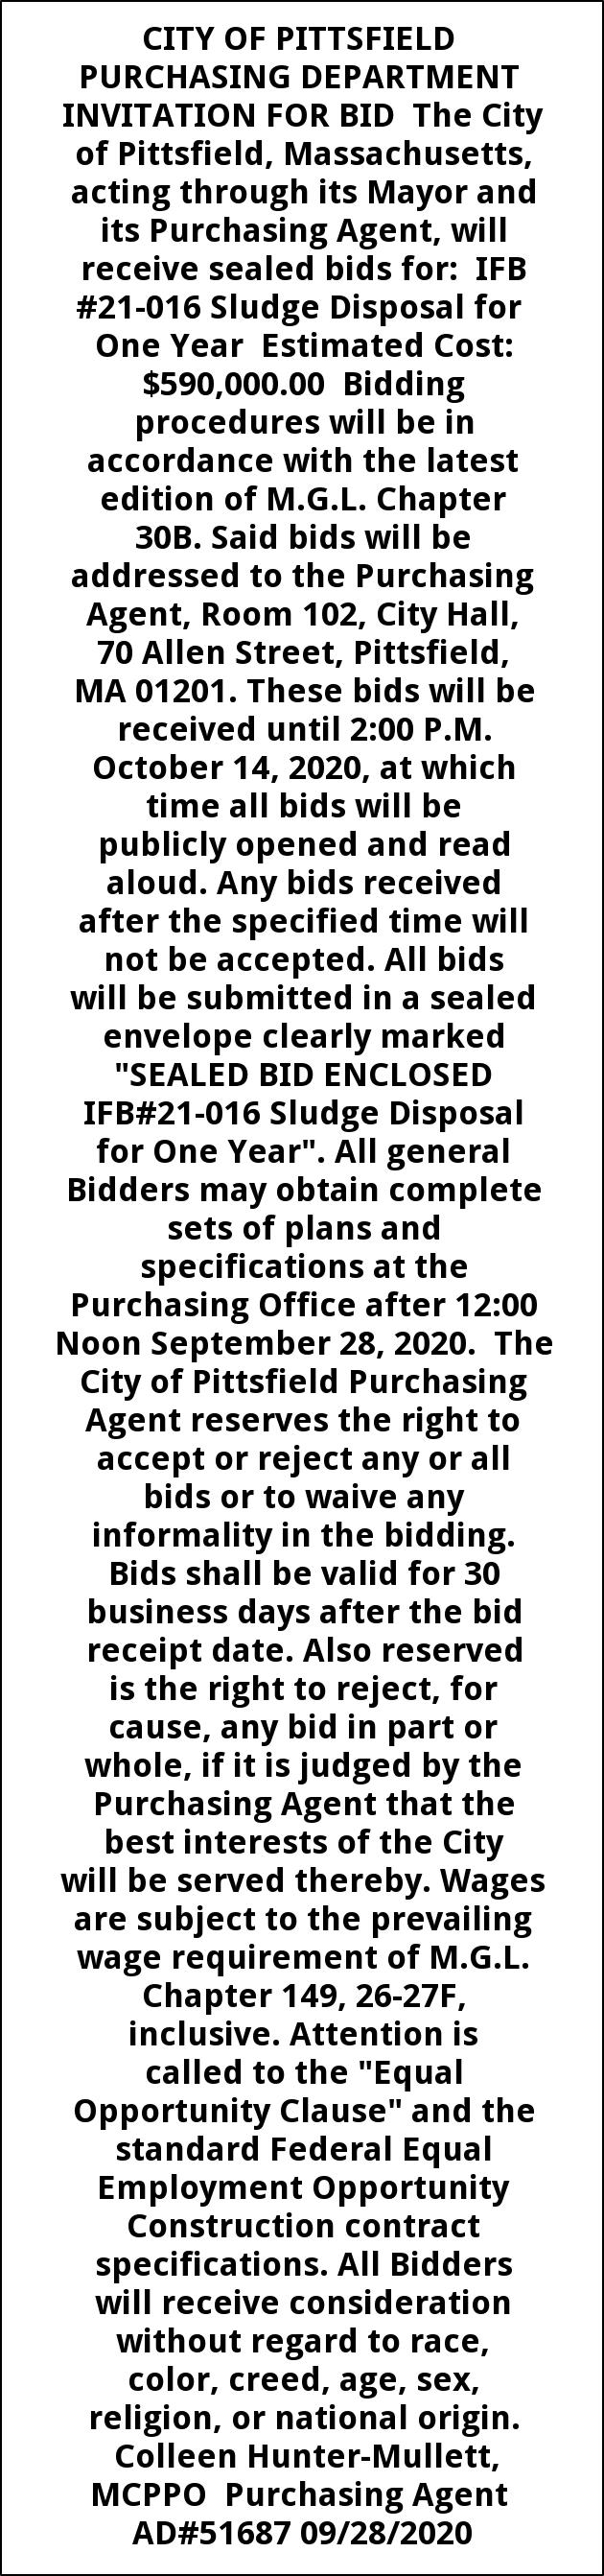 Purshasing Department Invitation for Bid